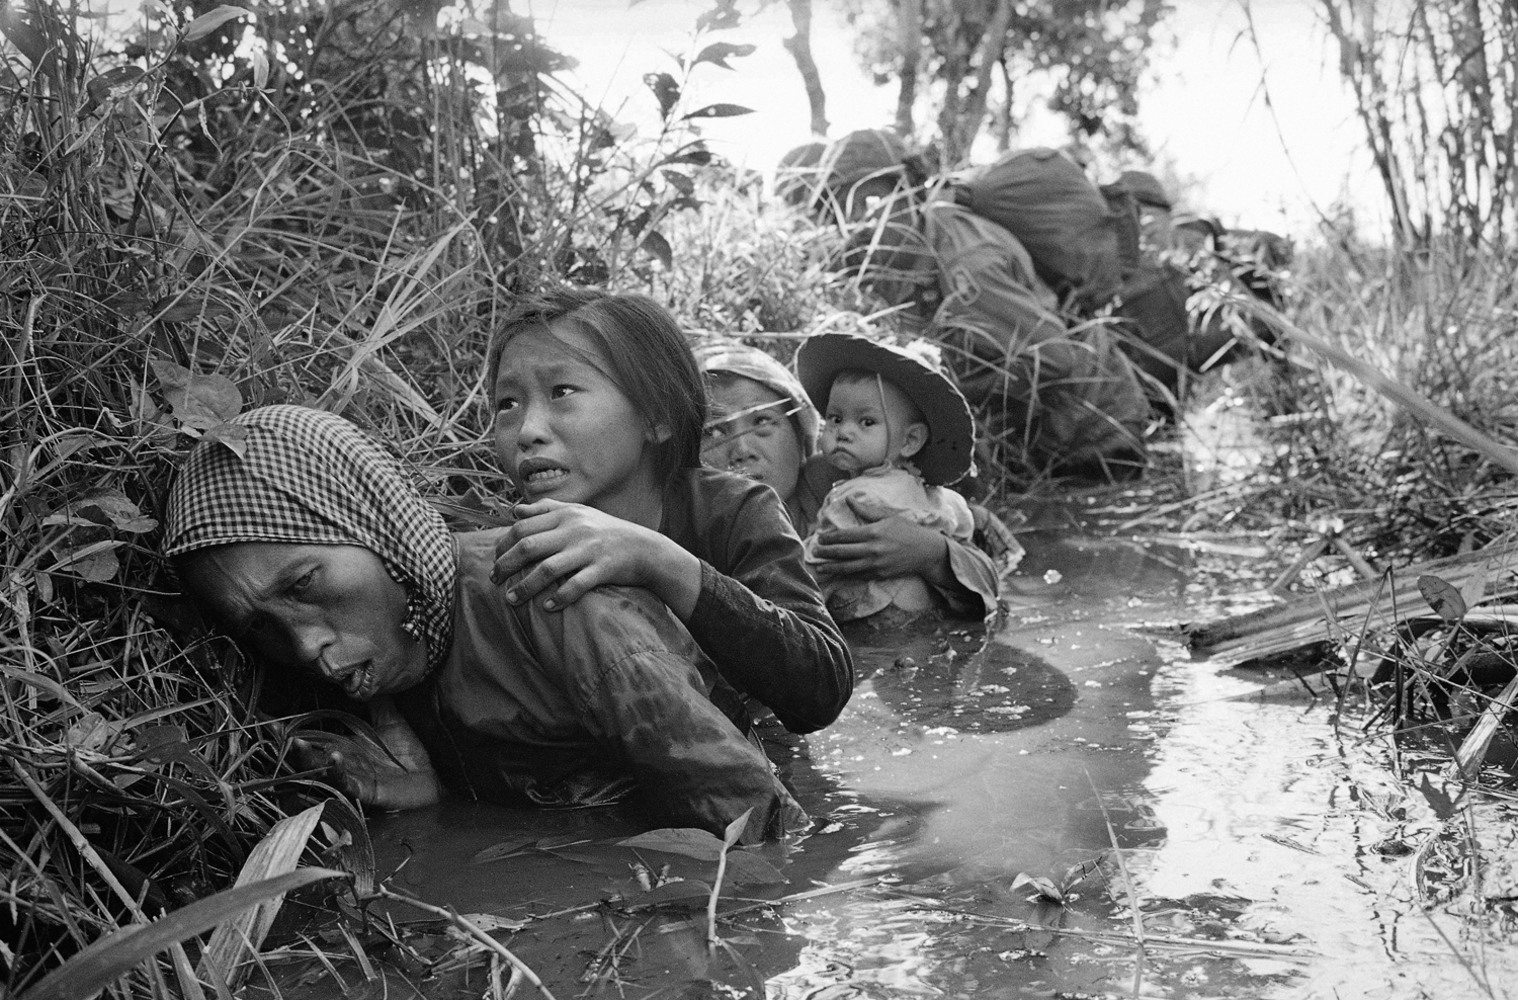 Vietnam War Photos Still Powerful Nearly 50 Years Later